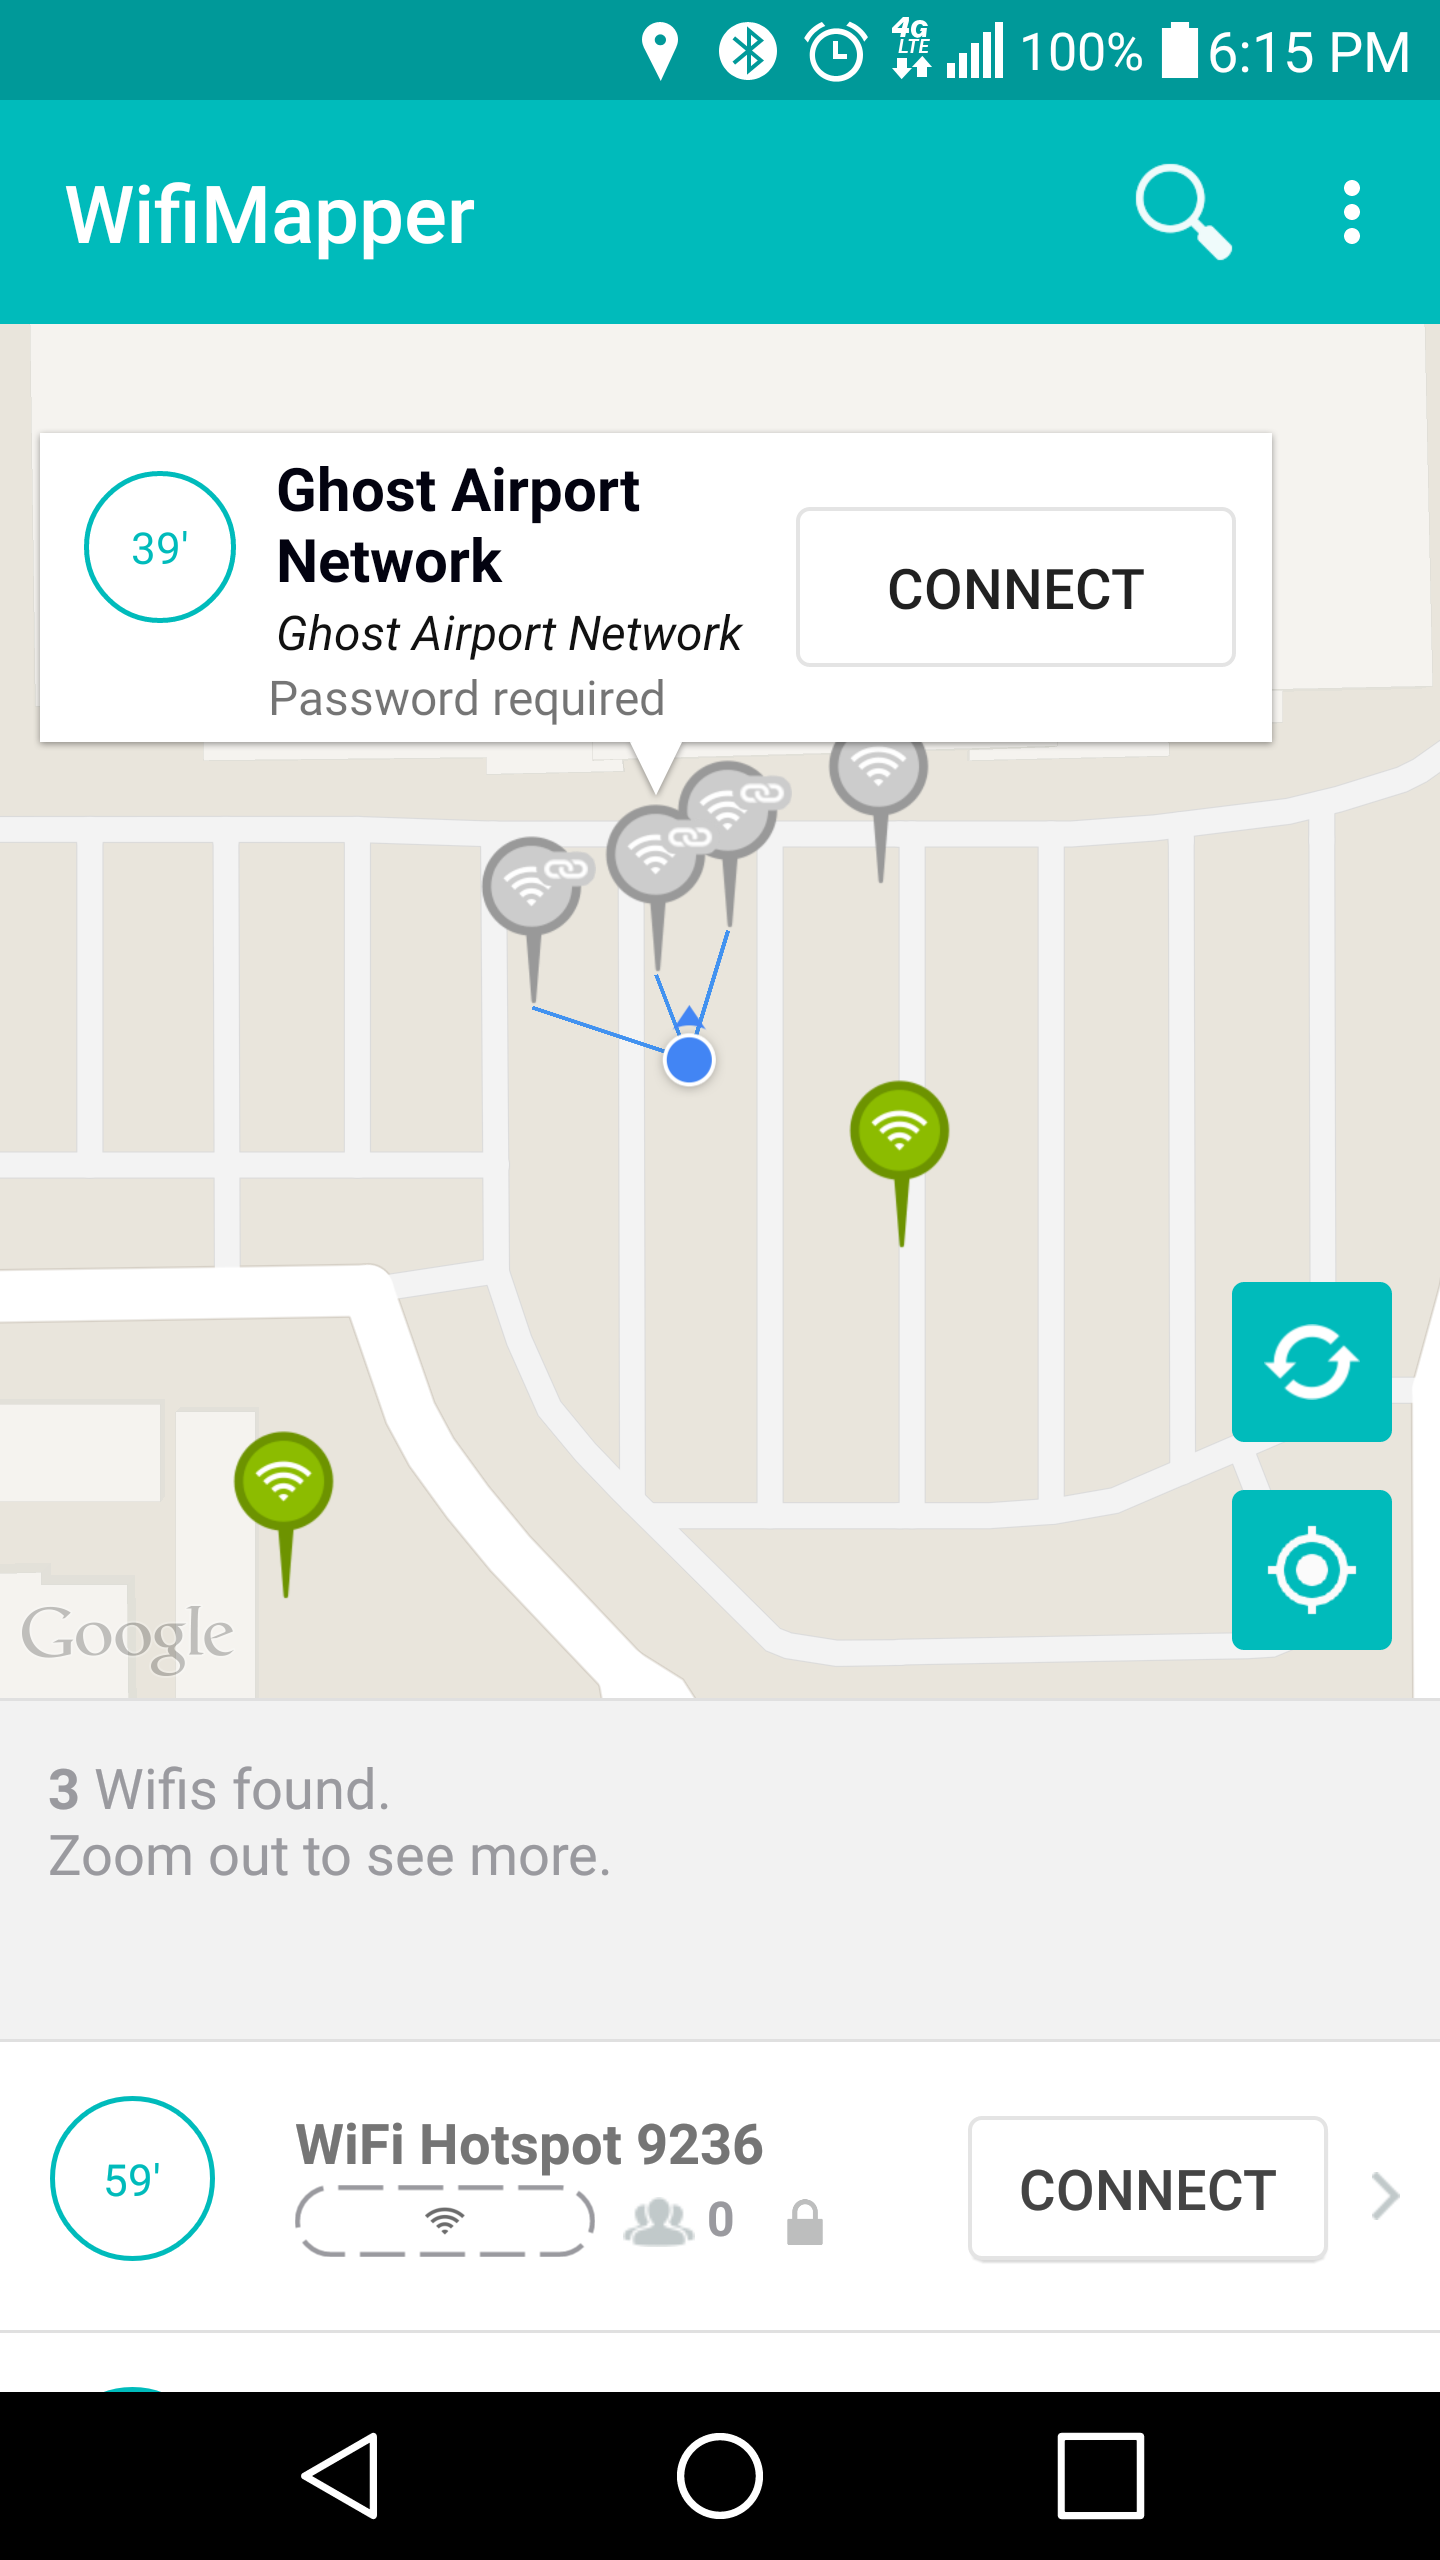 Android App Roundup Tested This Arrangement Will Act As A Timer You Can Control The Time By Opensignal Gets Its Vast Location Data On Wifi Access Points From Users Of And Collection Happens Automatically In Background If Youre